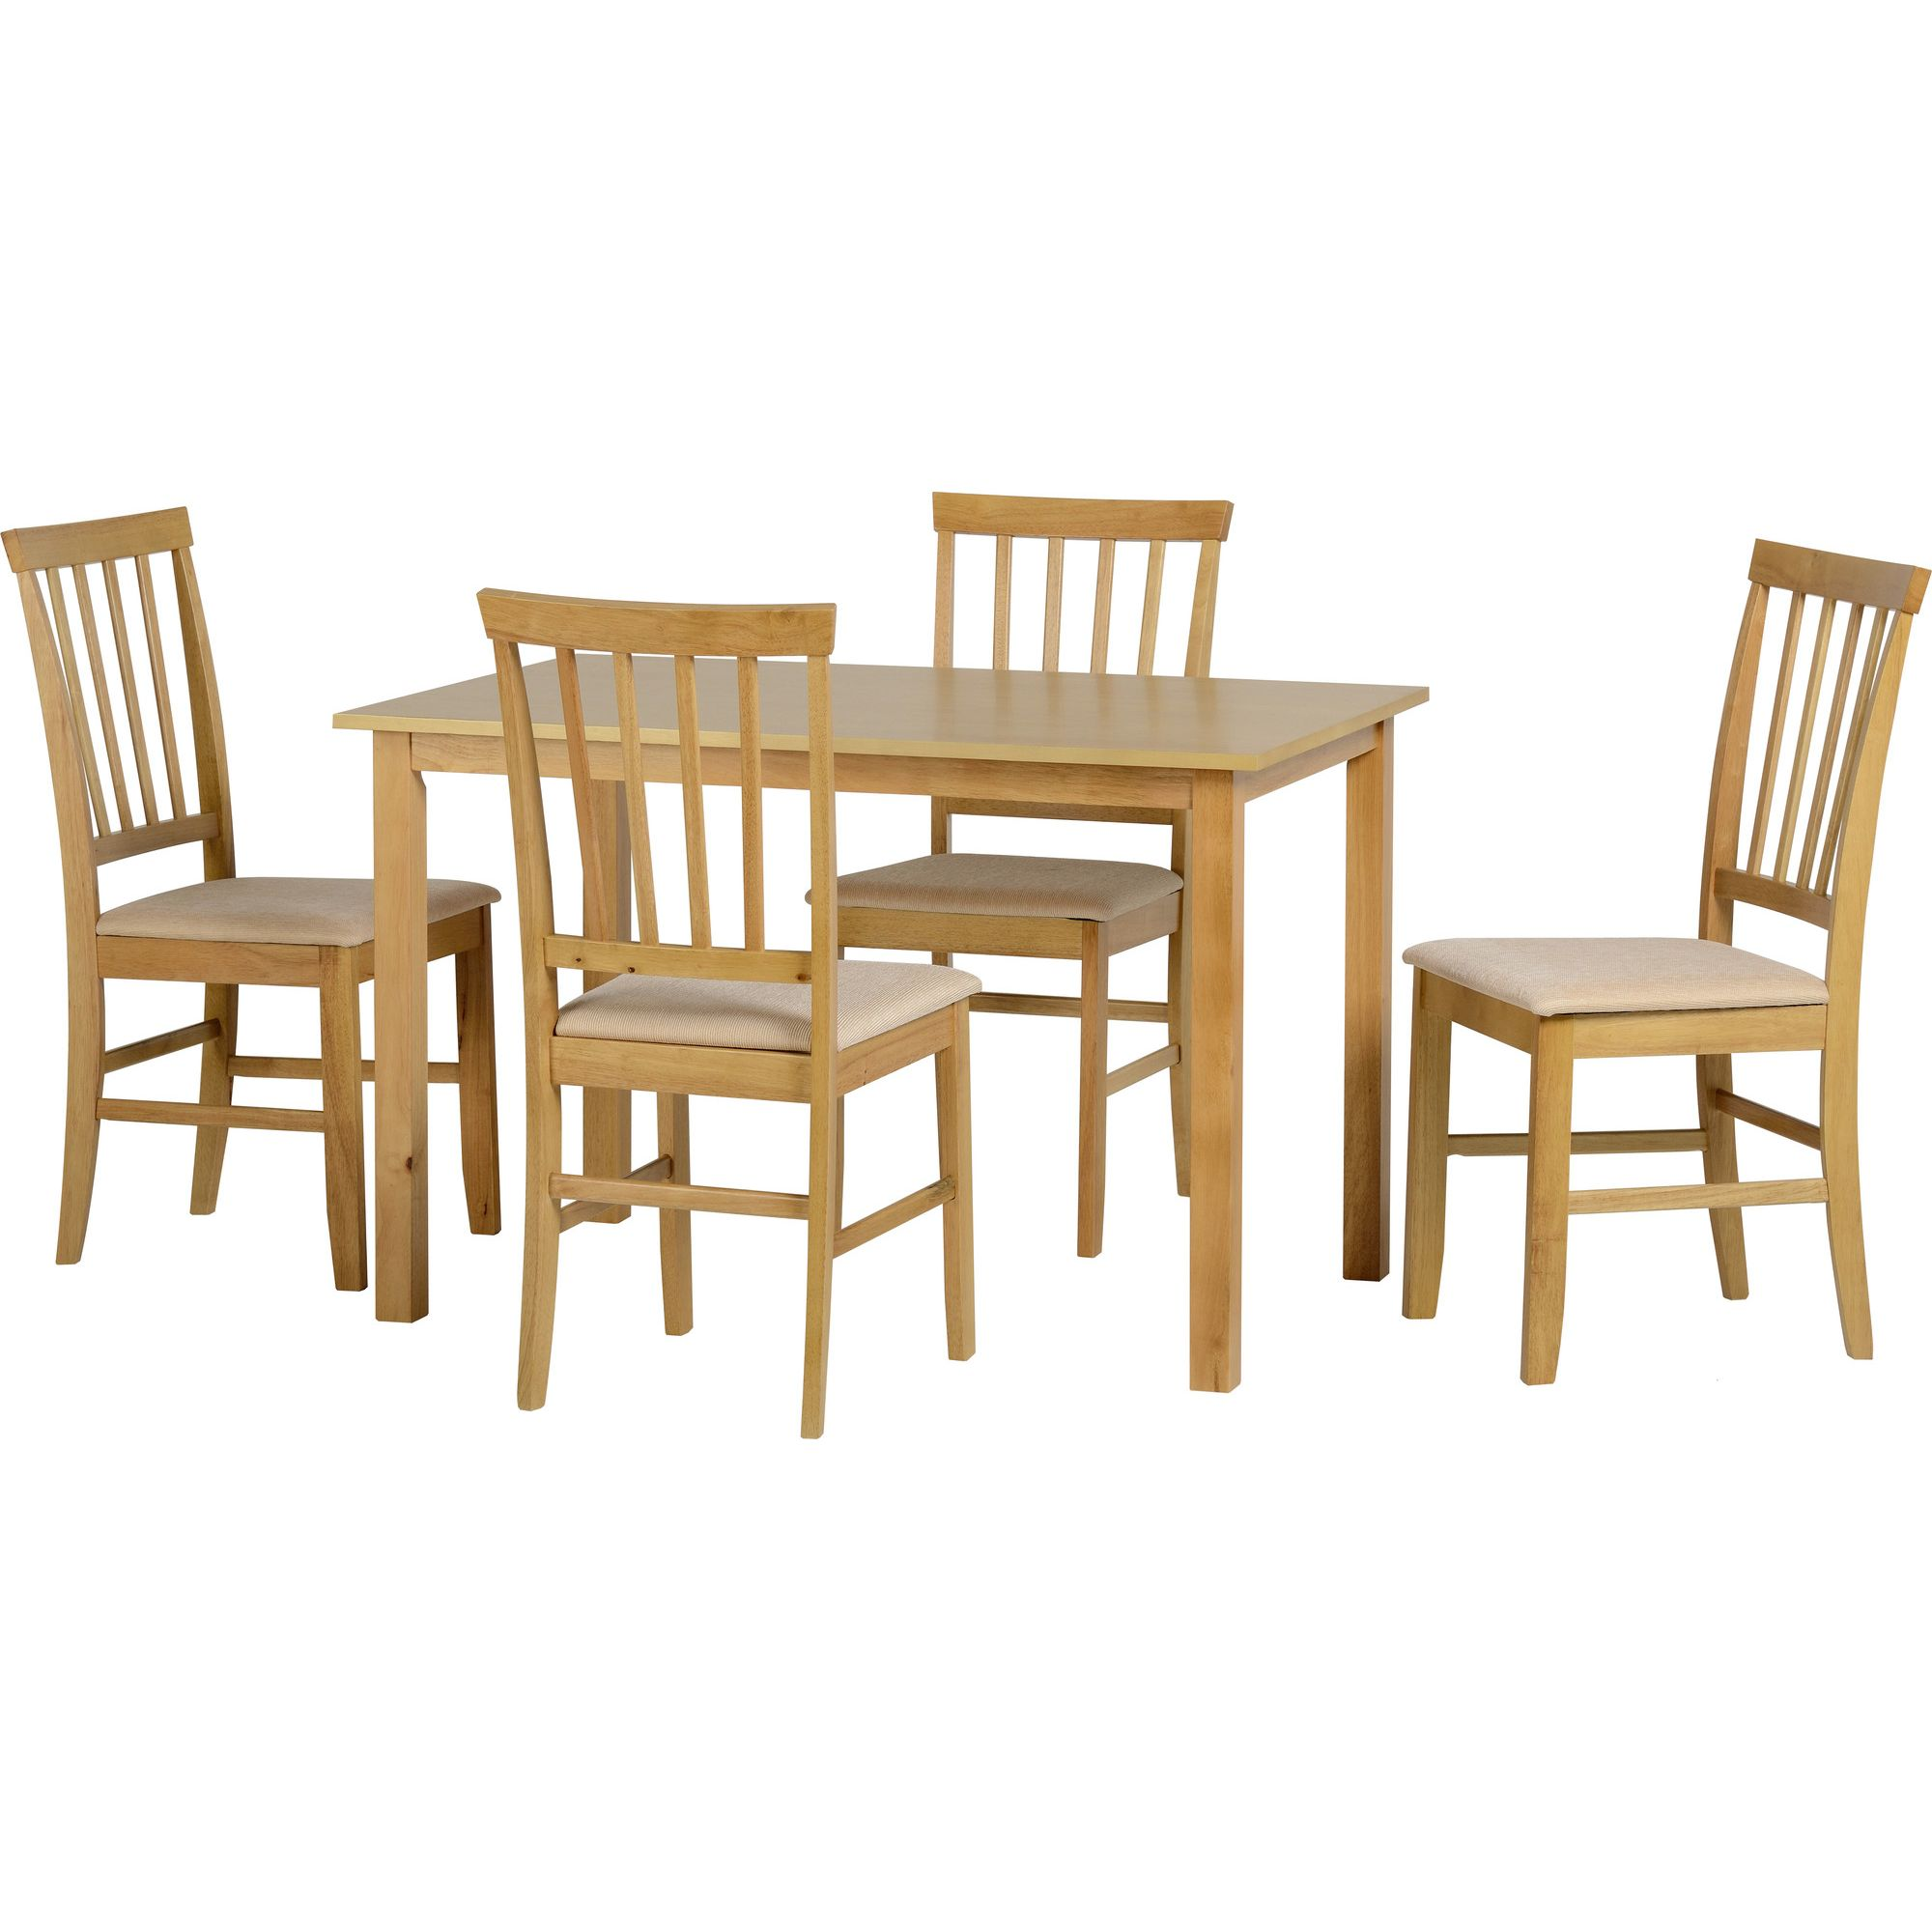 Home Essence Selina 5 Piece Dining Set - with 4 chairs at Tescos Direct